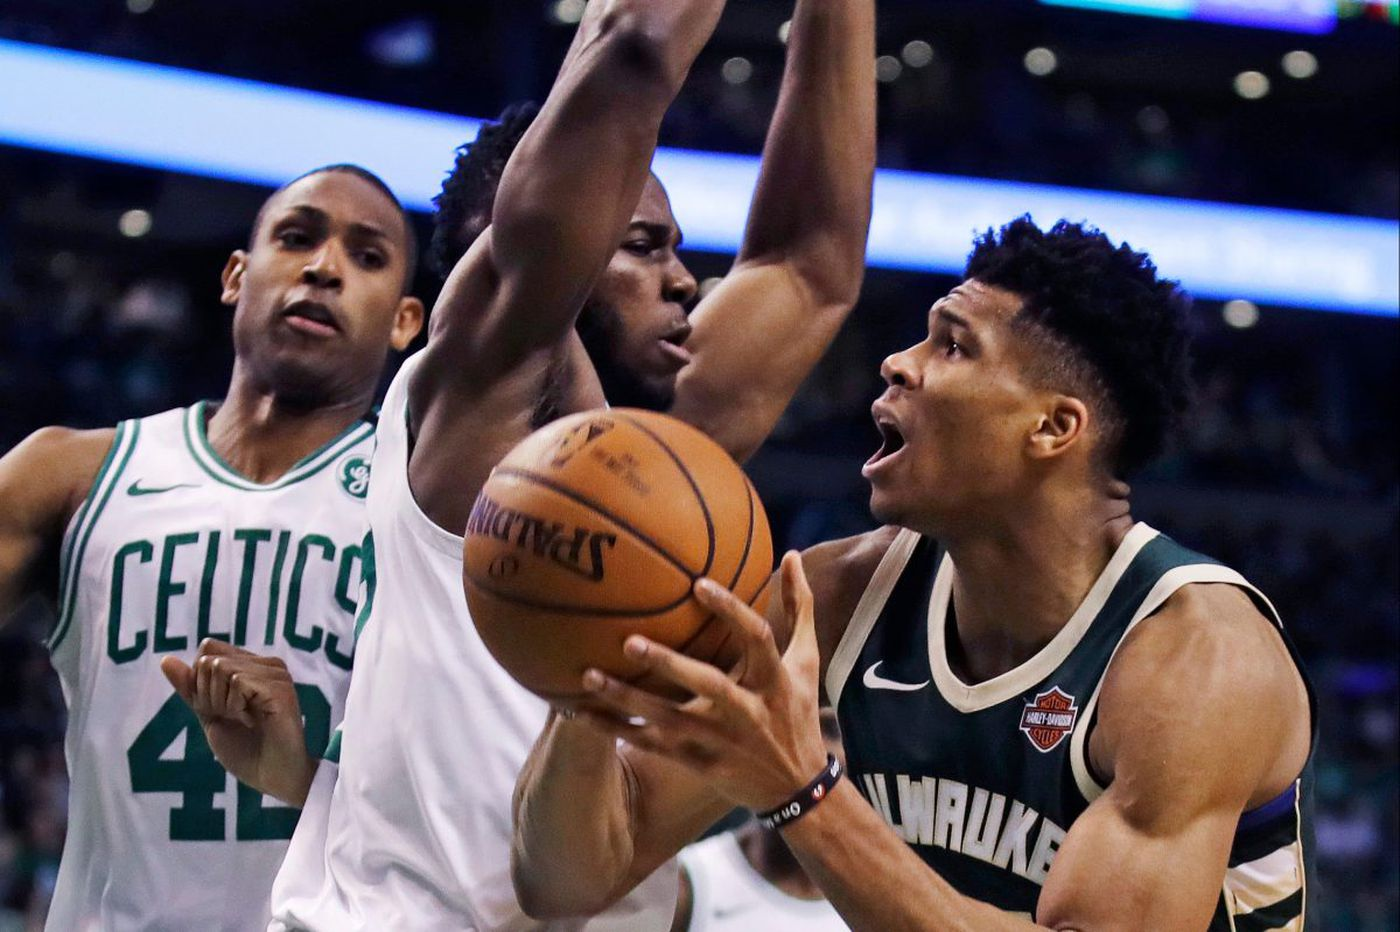 Sixers' Brett Brown expects Semi Ojeleye, Marcus Smart to guard Ben Simmons